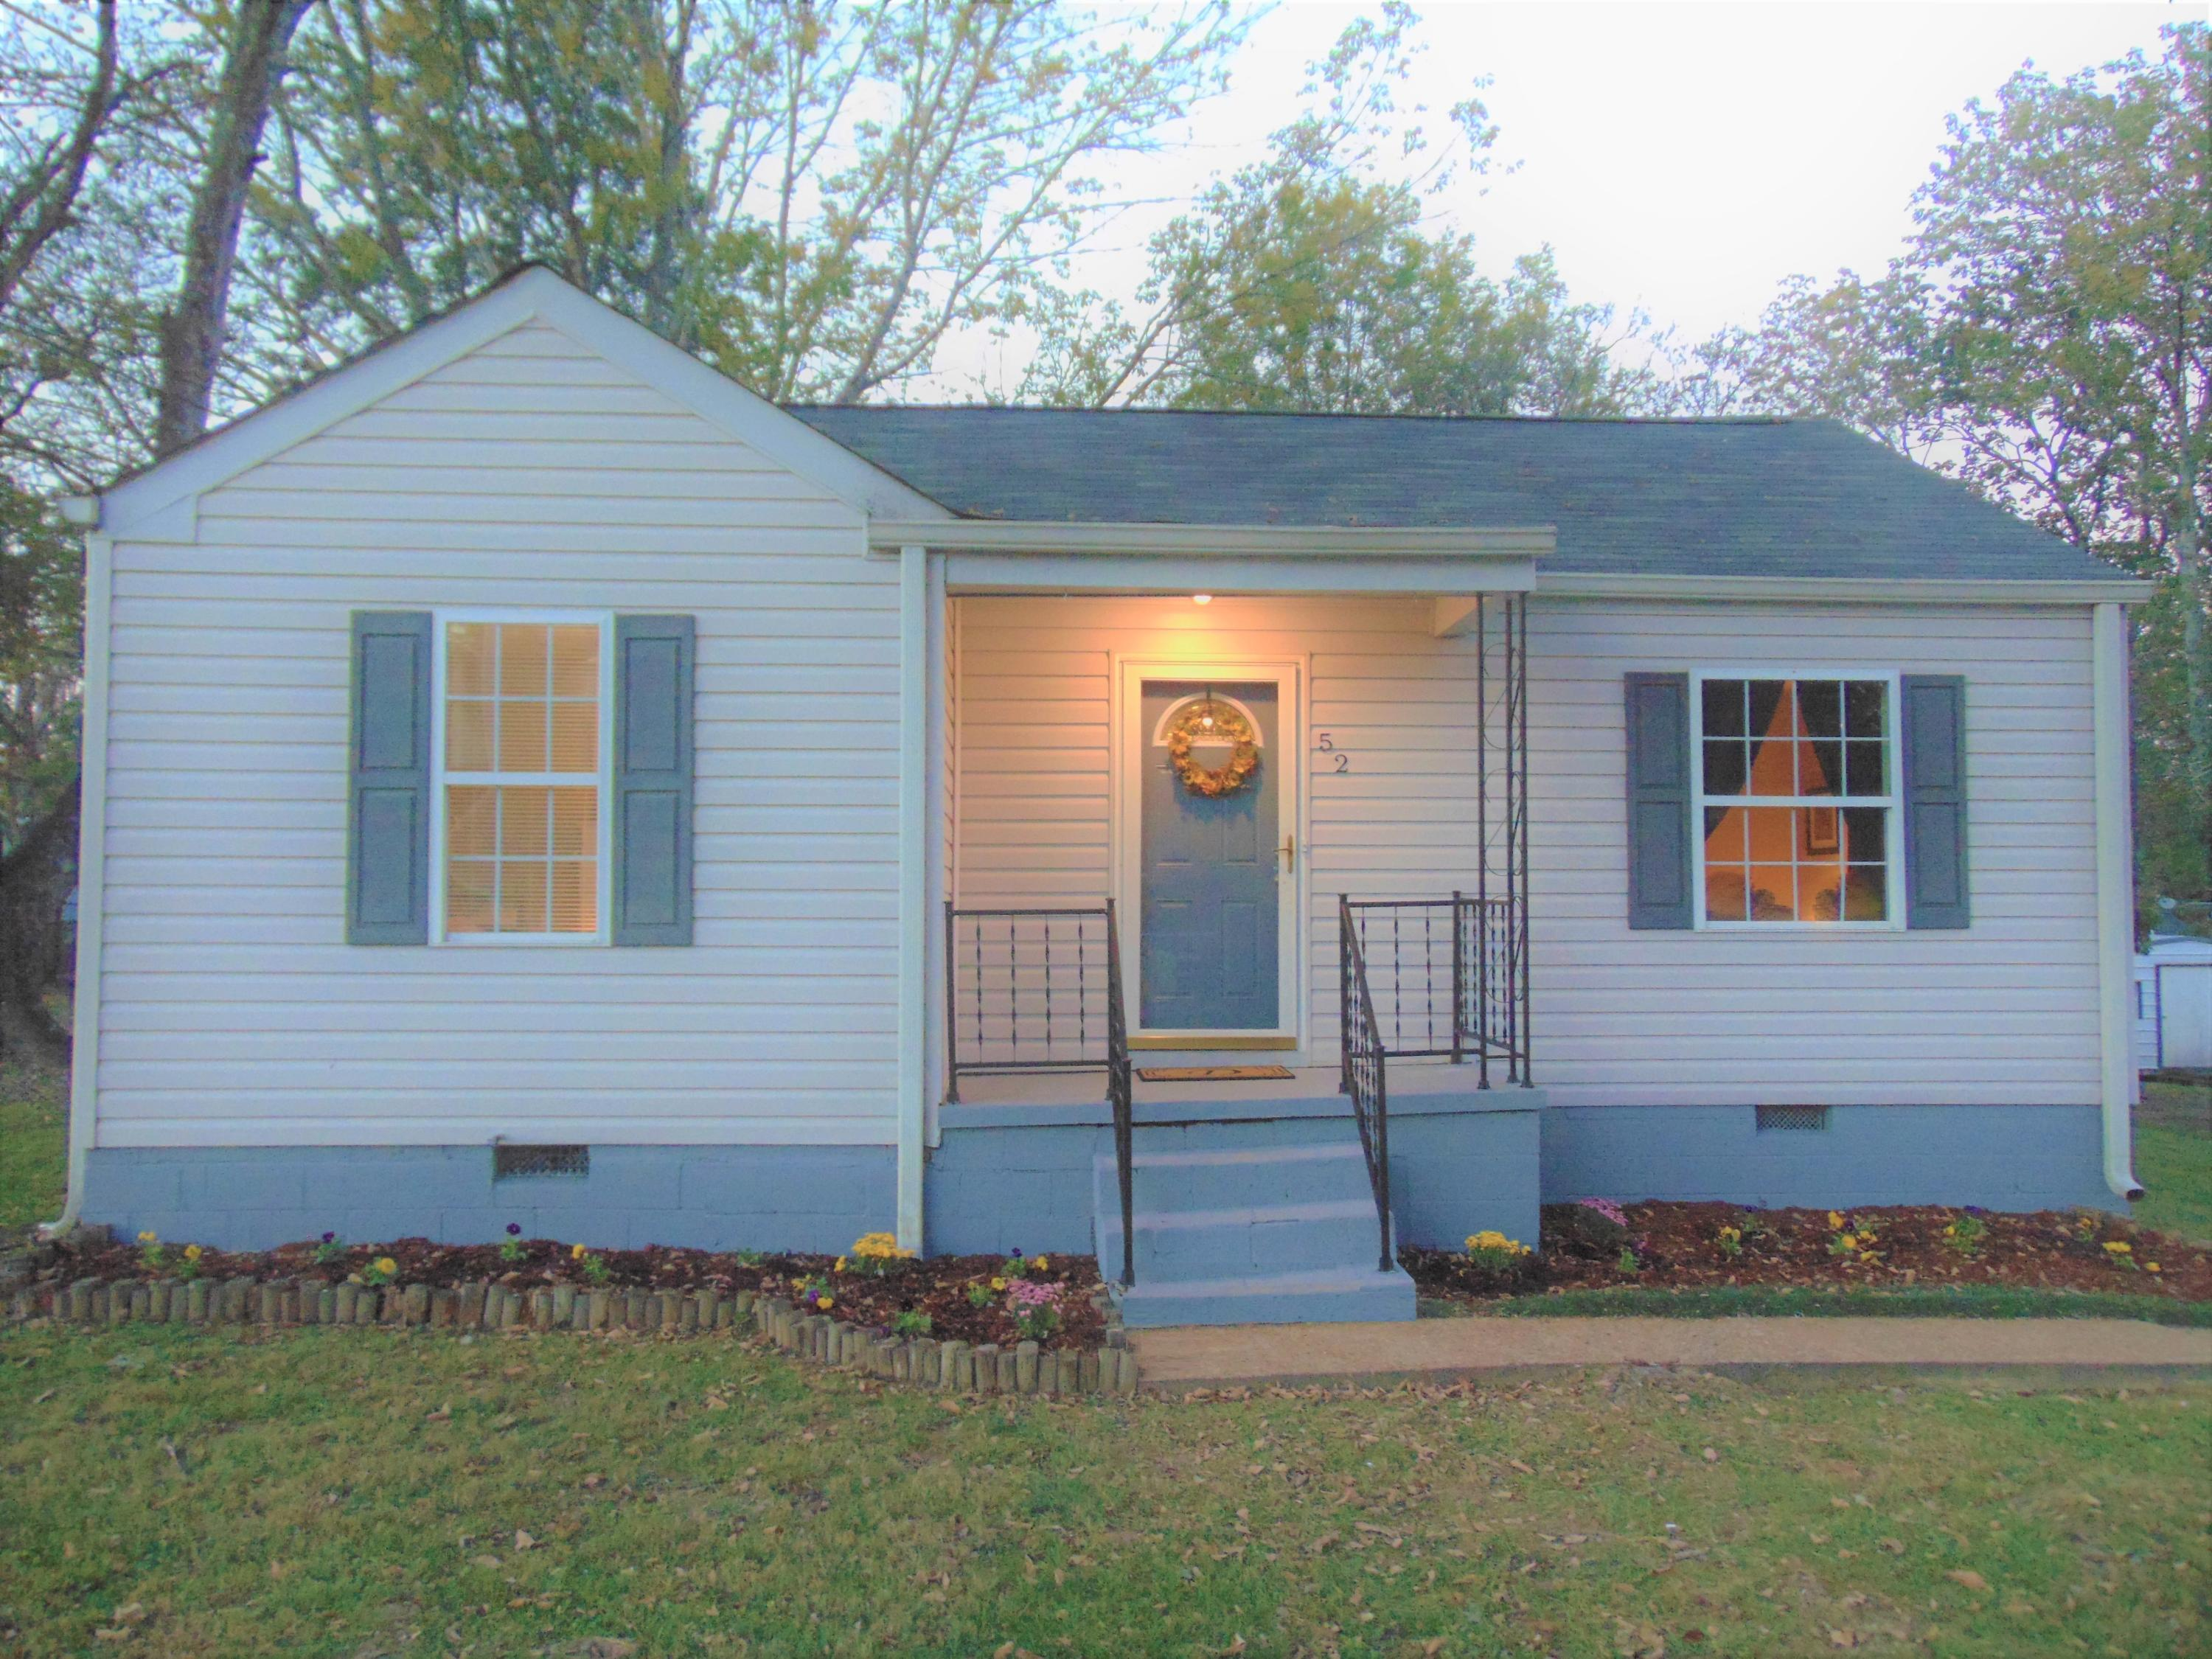 52 Pegram Cir, Fort Oglethorpe, GA 30742